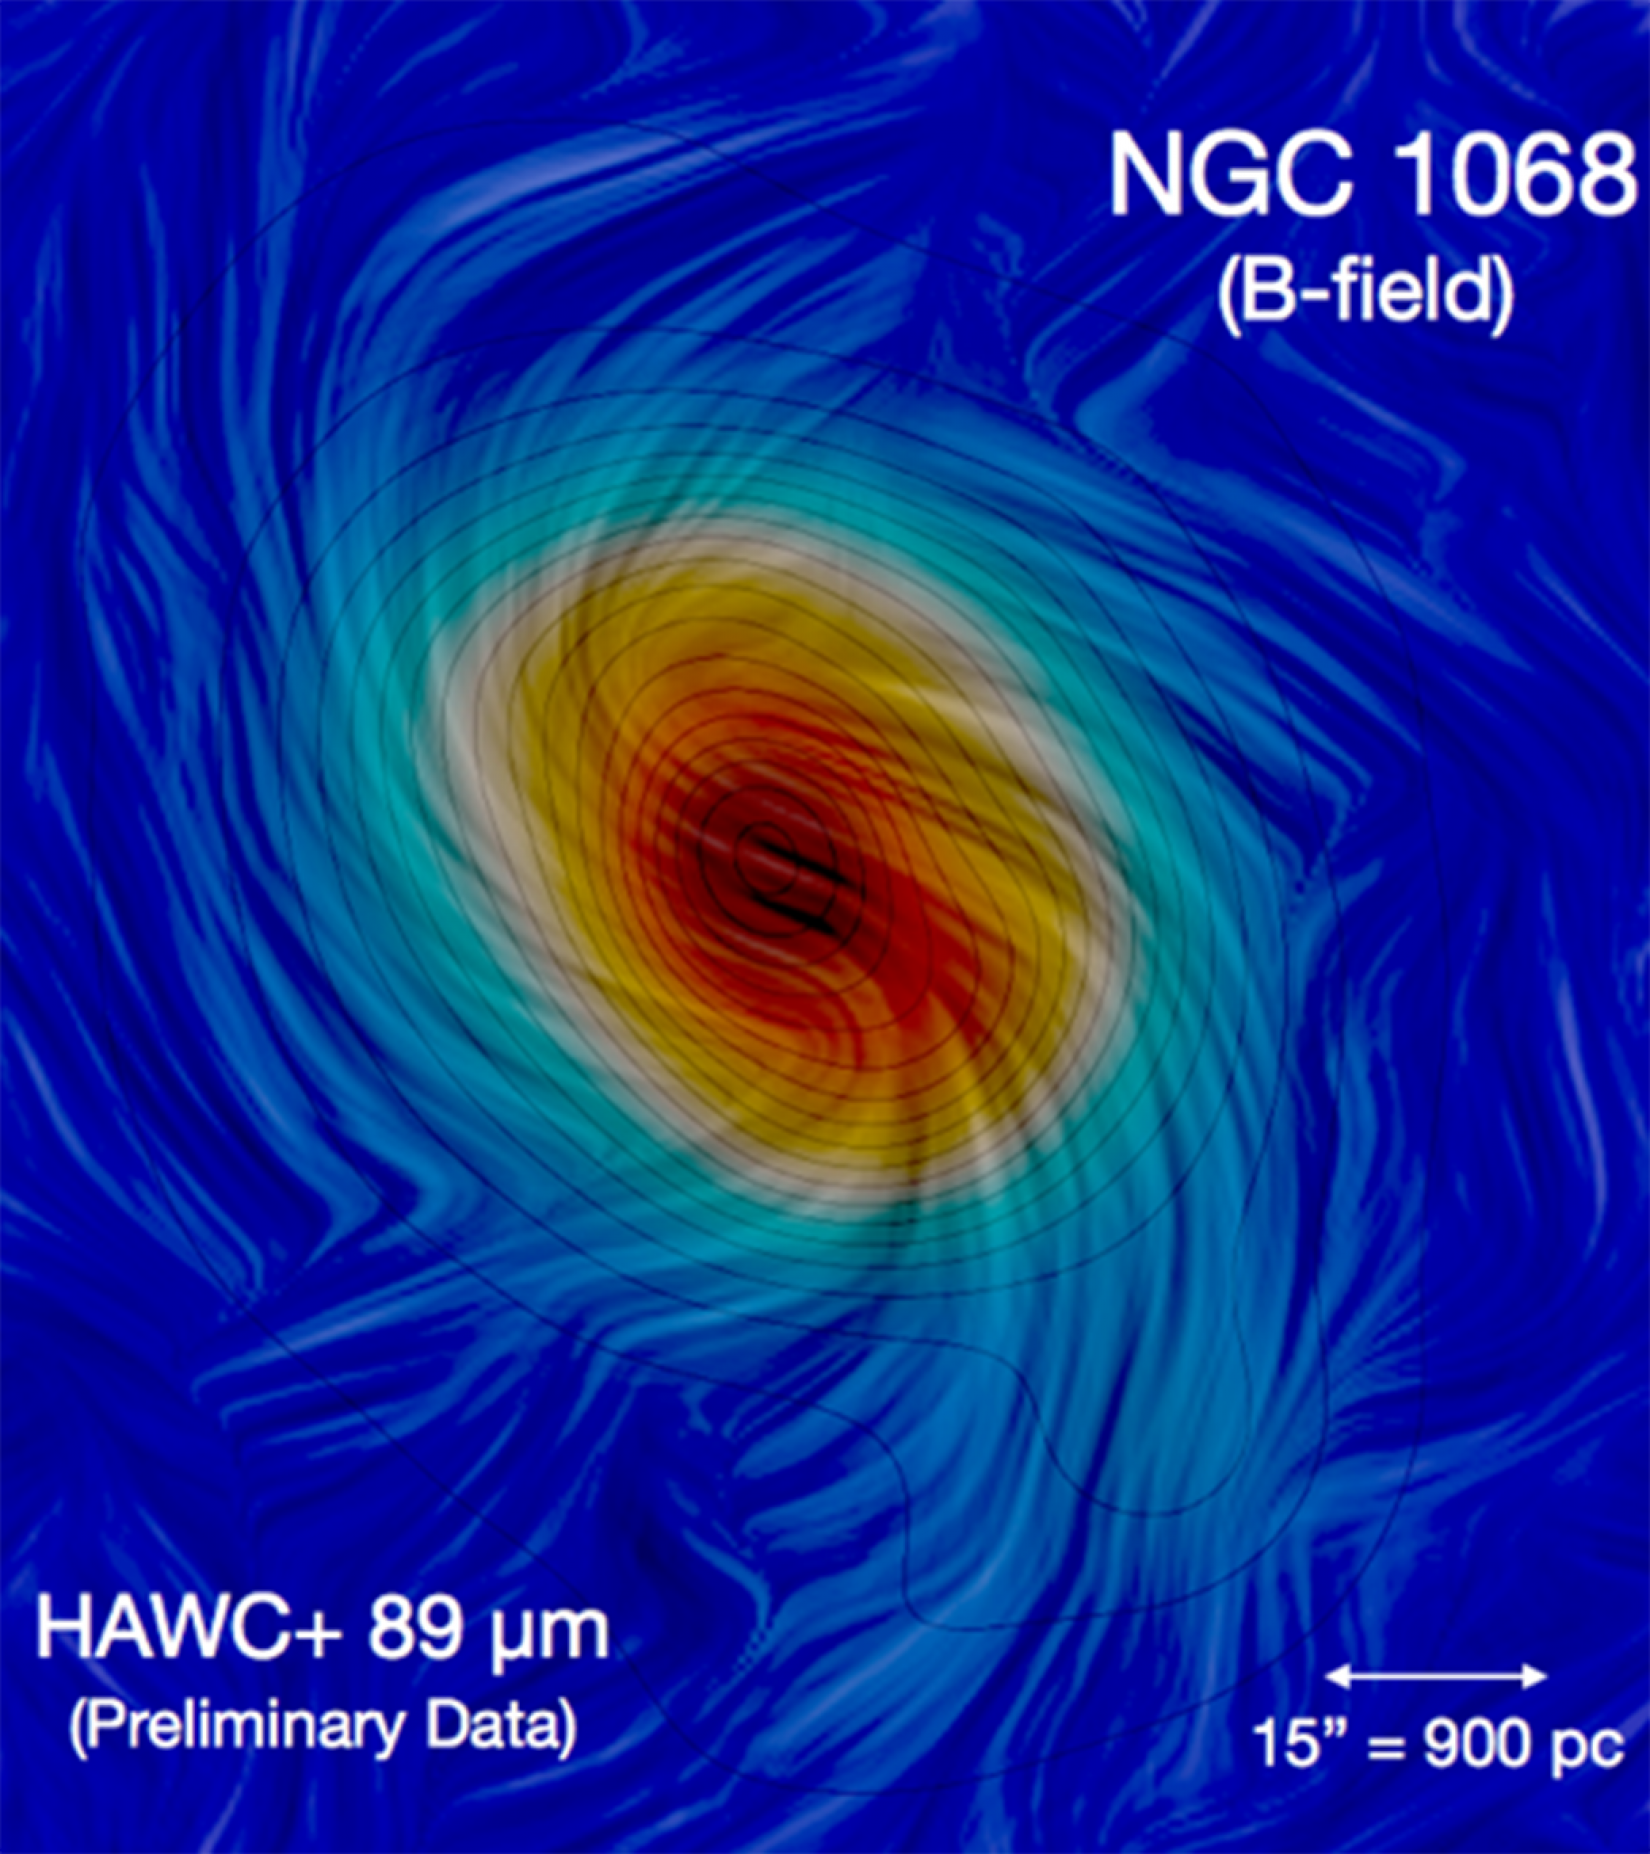 Image showing magnetized spiral arms of NGC 1068